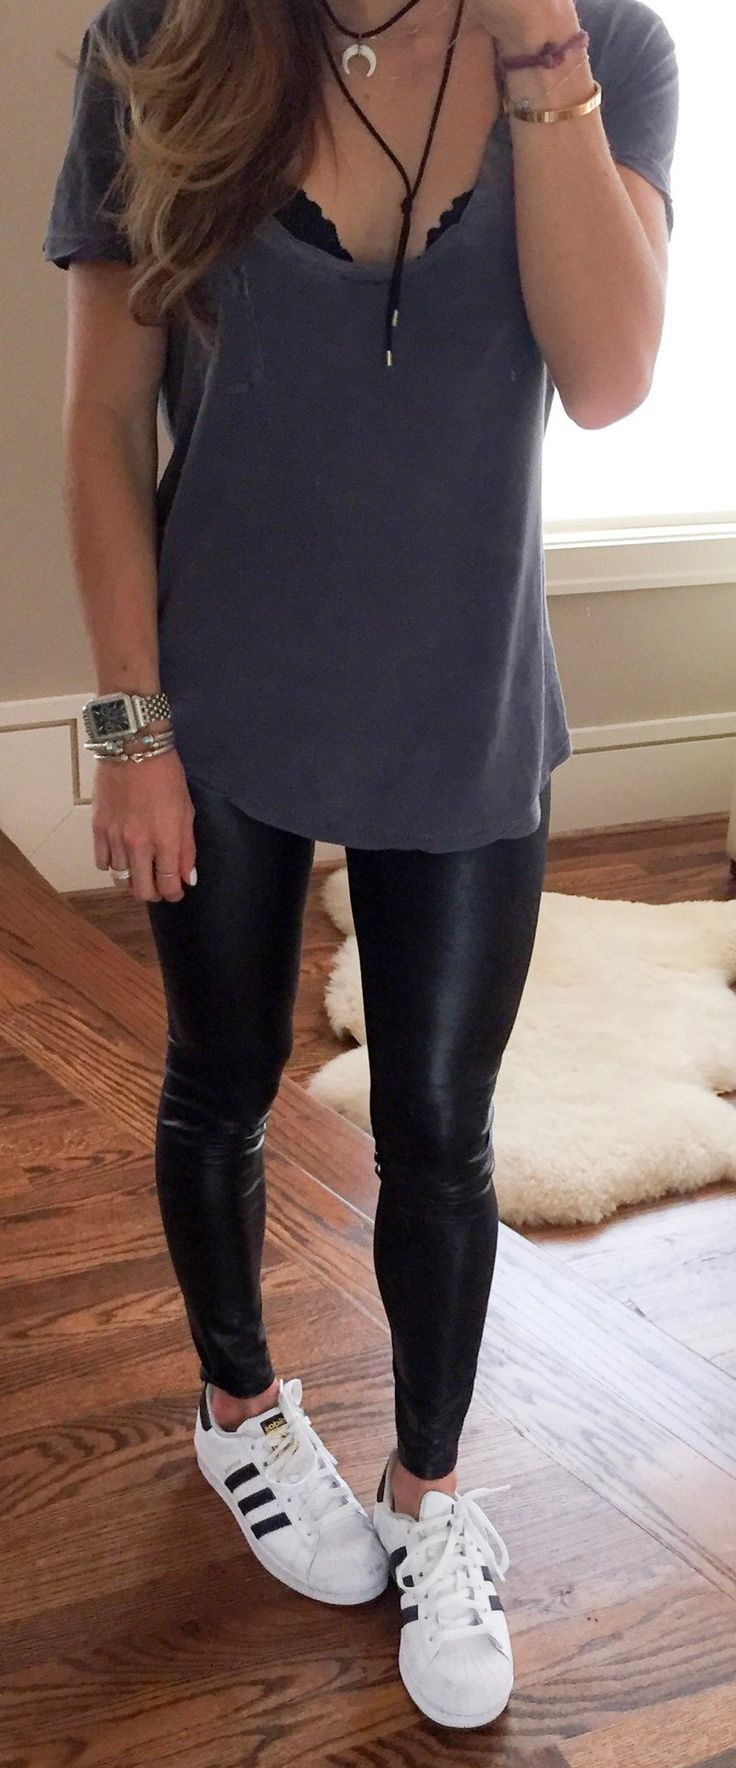 Grey Top / Black Leather Leggings / White Sneakers